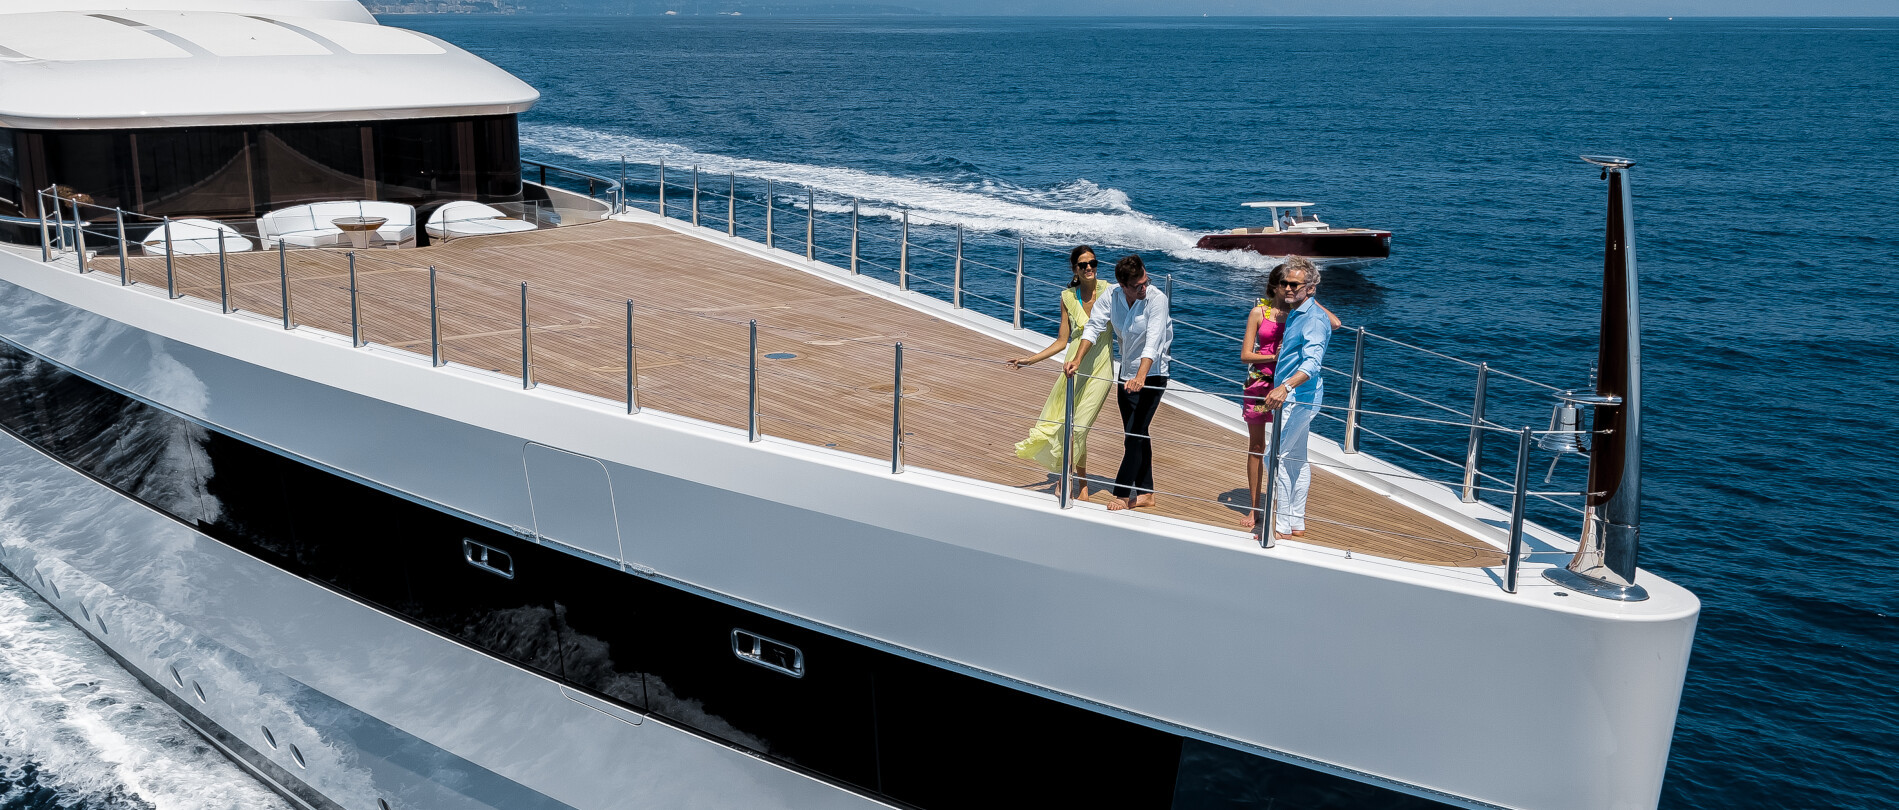 There's still time to book a summer charter in the Mediterranean photo 1